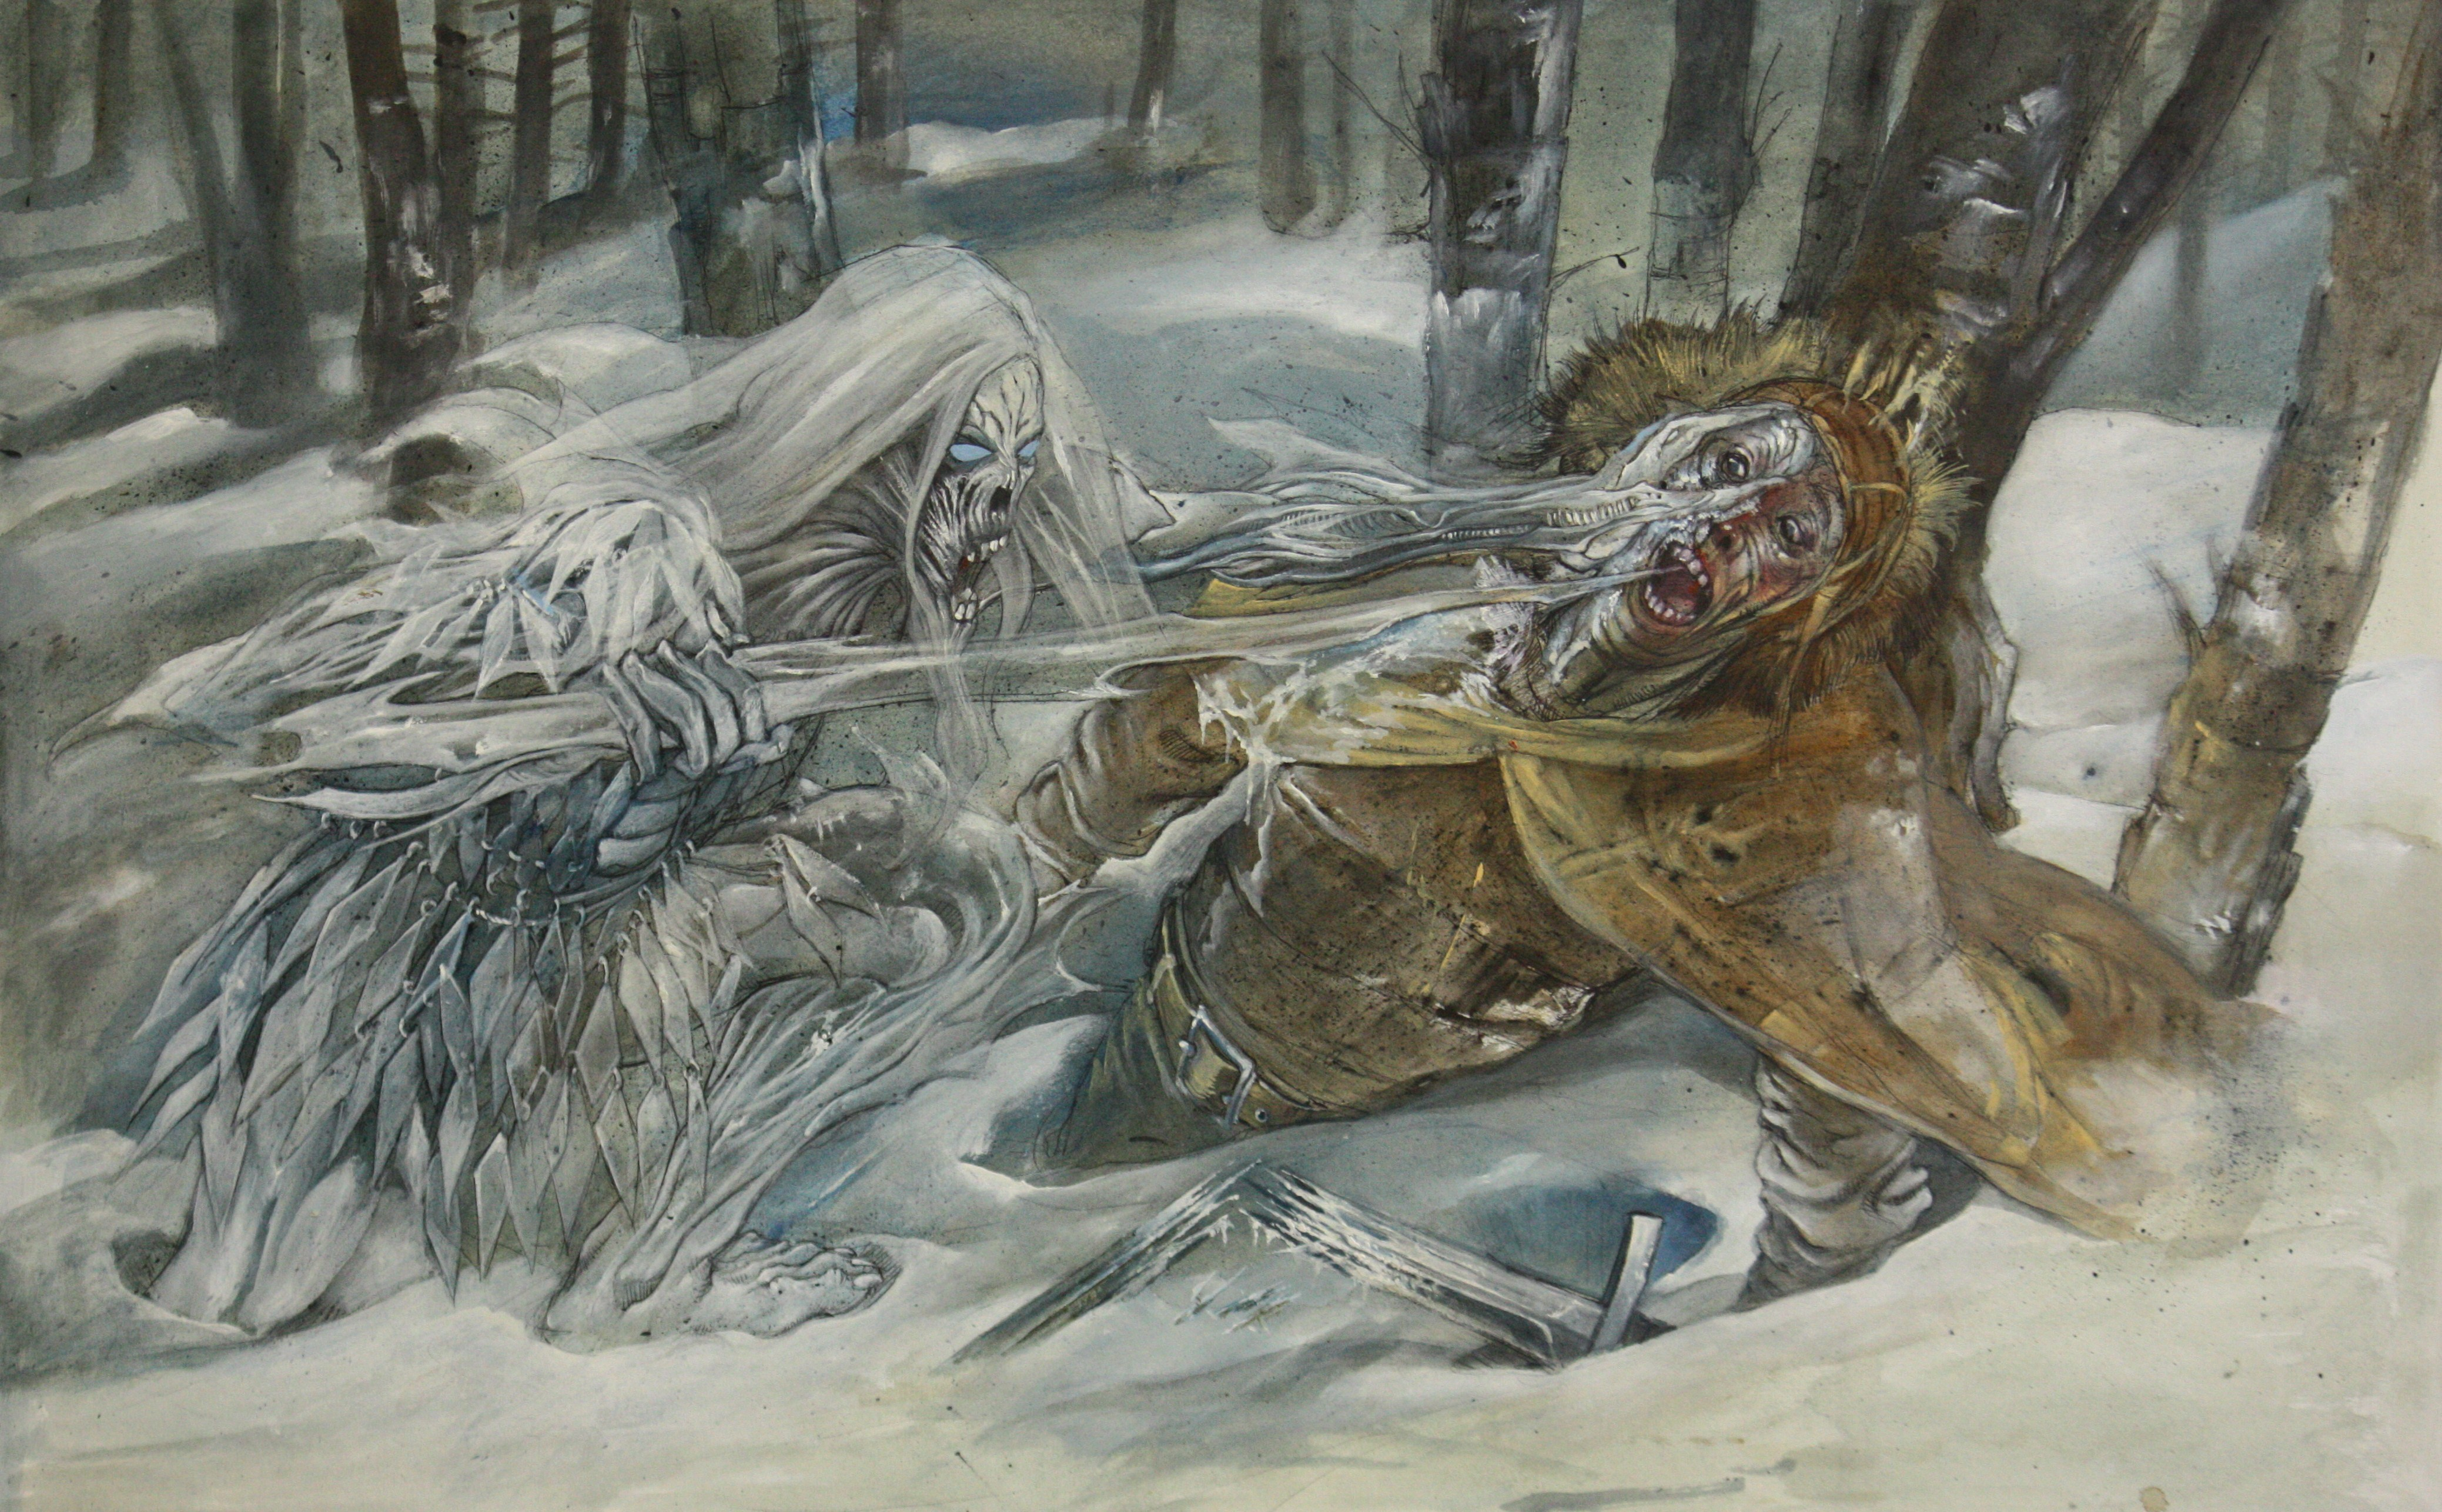 Whitewalker-Killing.jpg